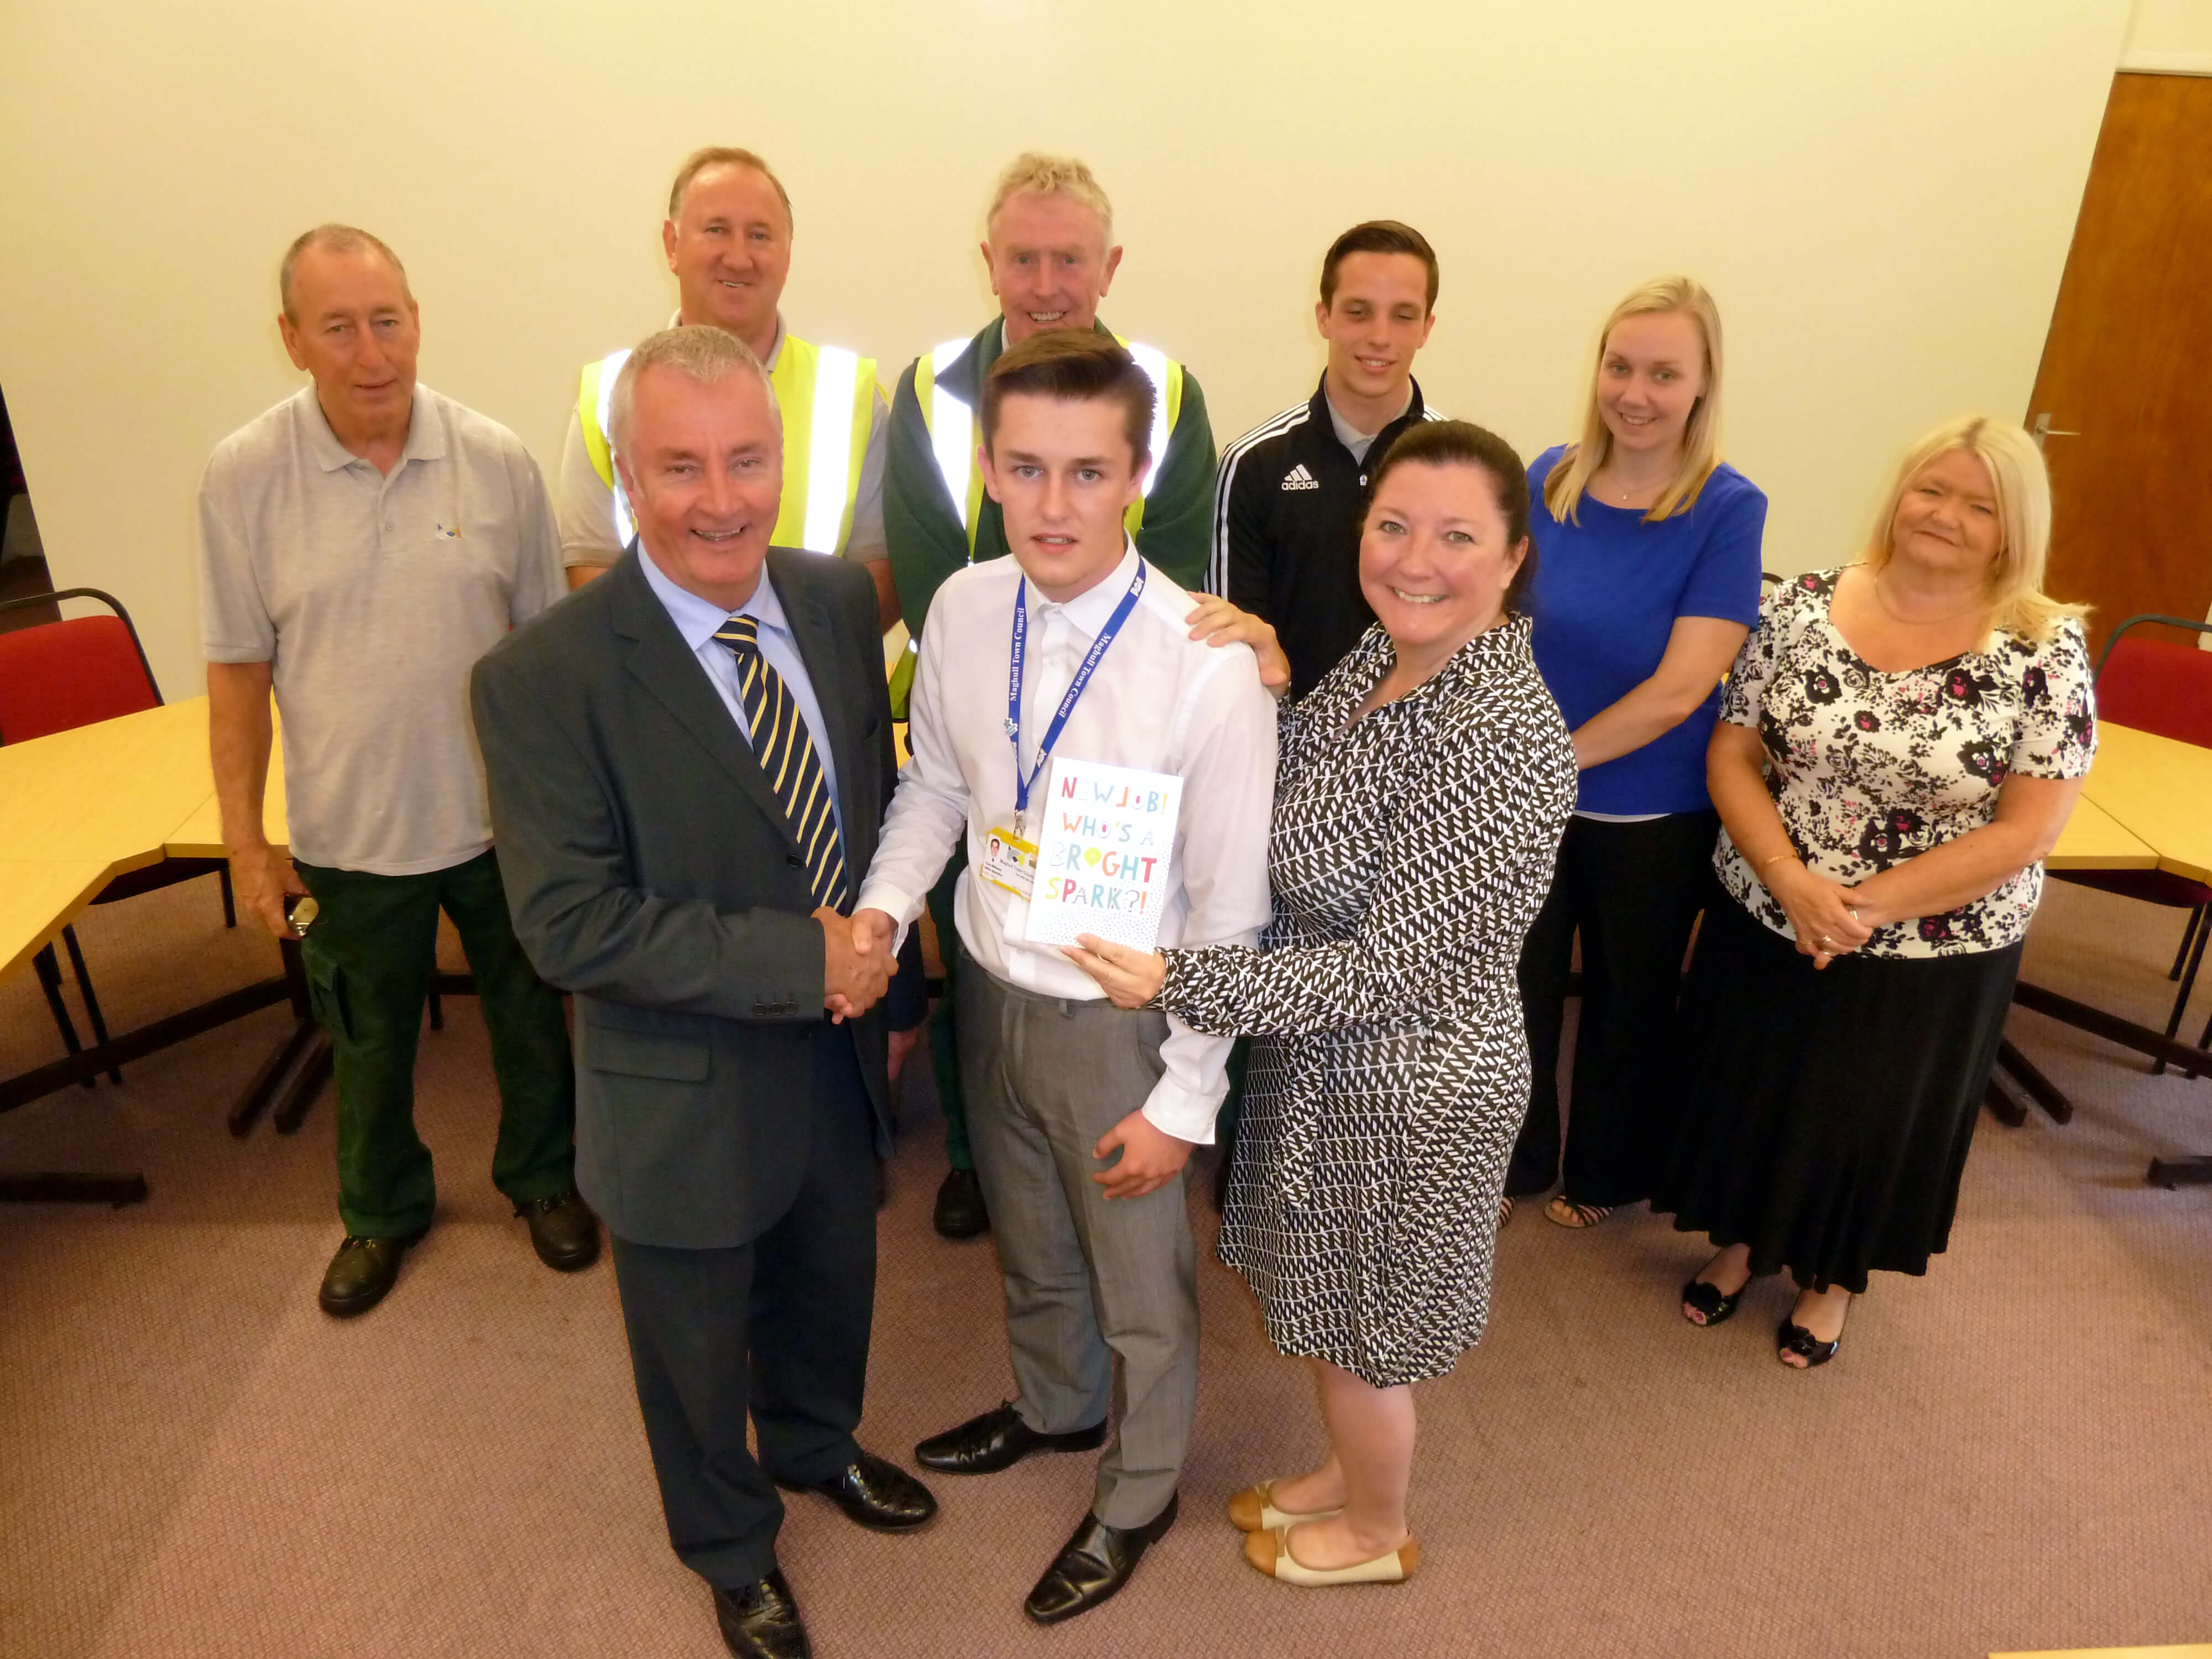 Maghull Town Council Labour leader Cllr Patrick McKinley and clerk Angela MacIntyre are joined by town council staff as they wish apprentice Thomas Williams best of luck in his new job.